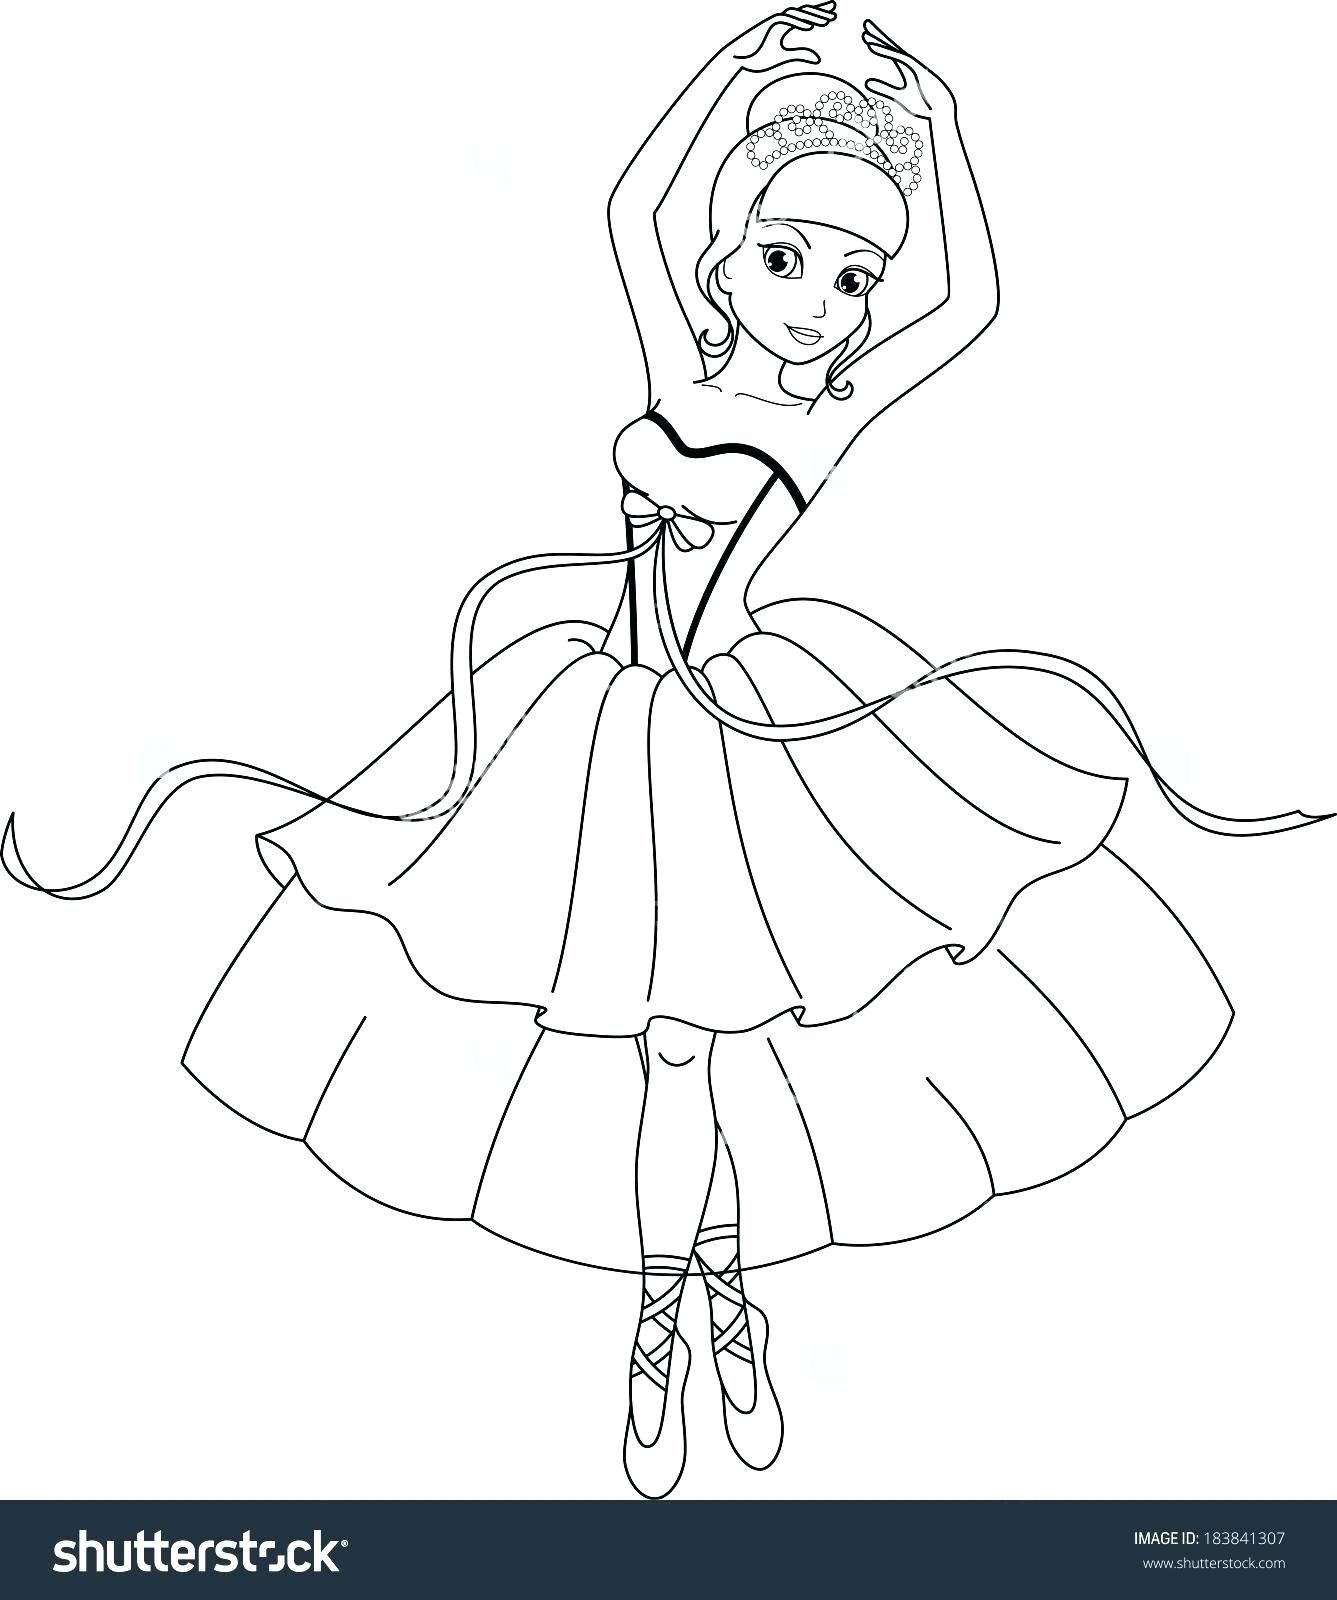 Detailed Ballerina Coloring Pages For Adults Dance Coloring Pages Coloring Pages Ballerina Coloring Pages